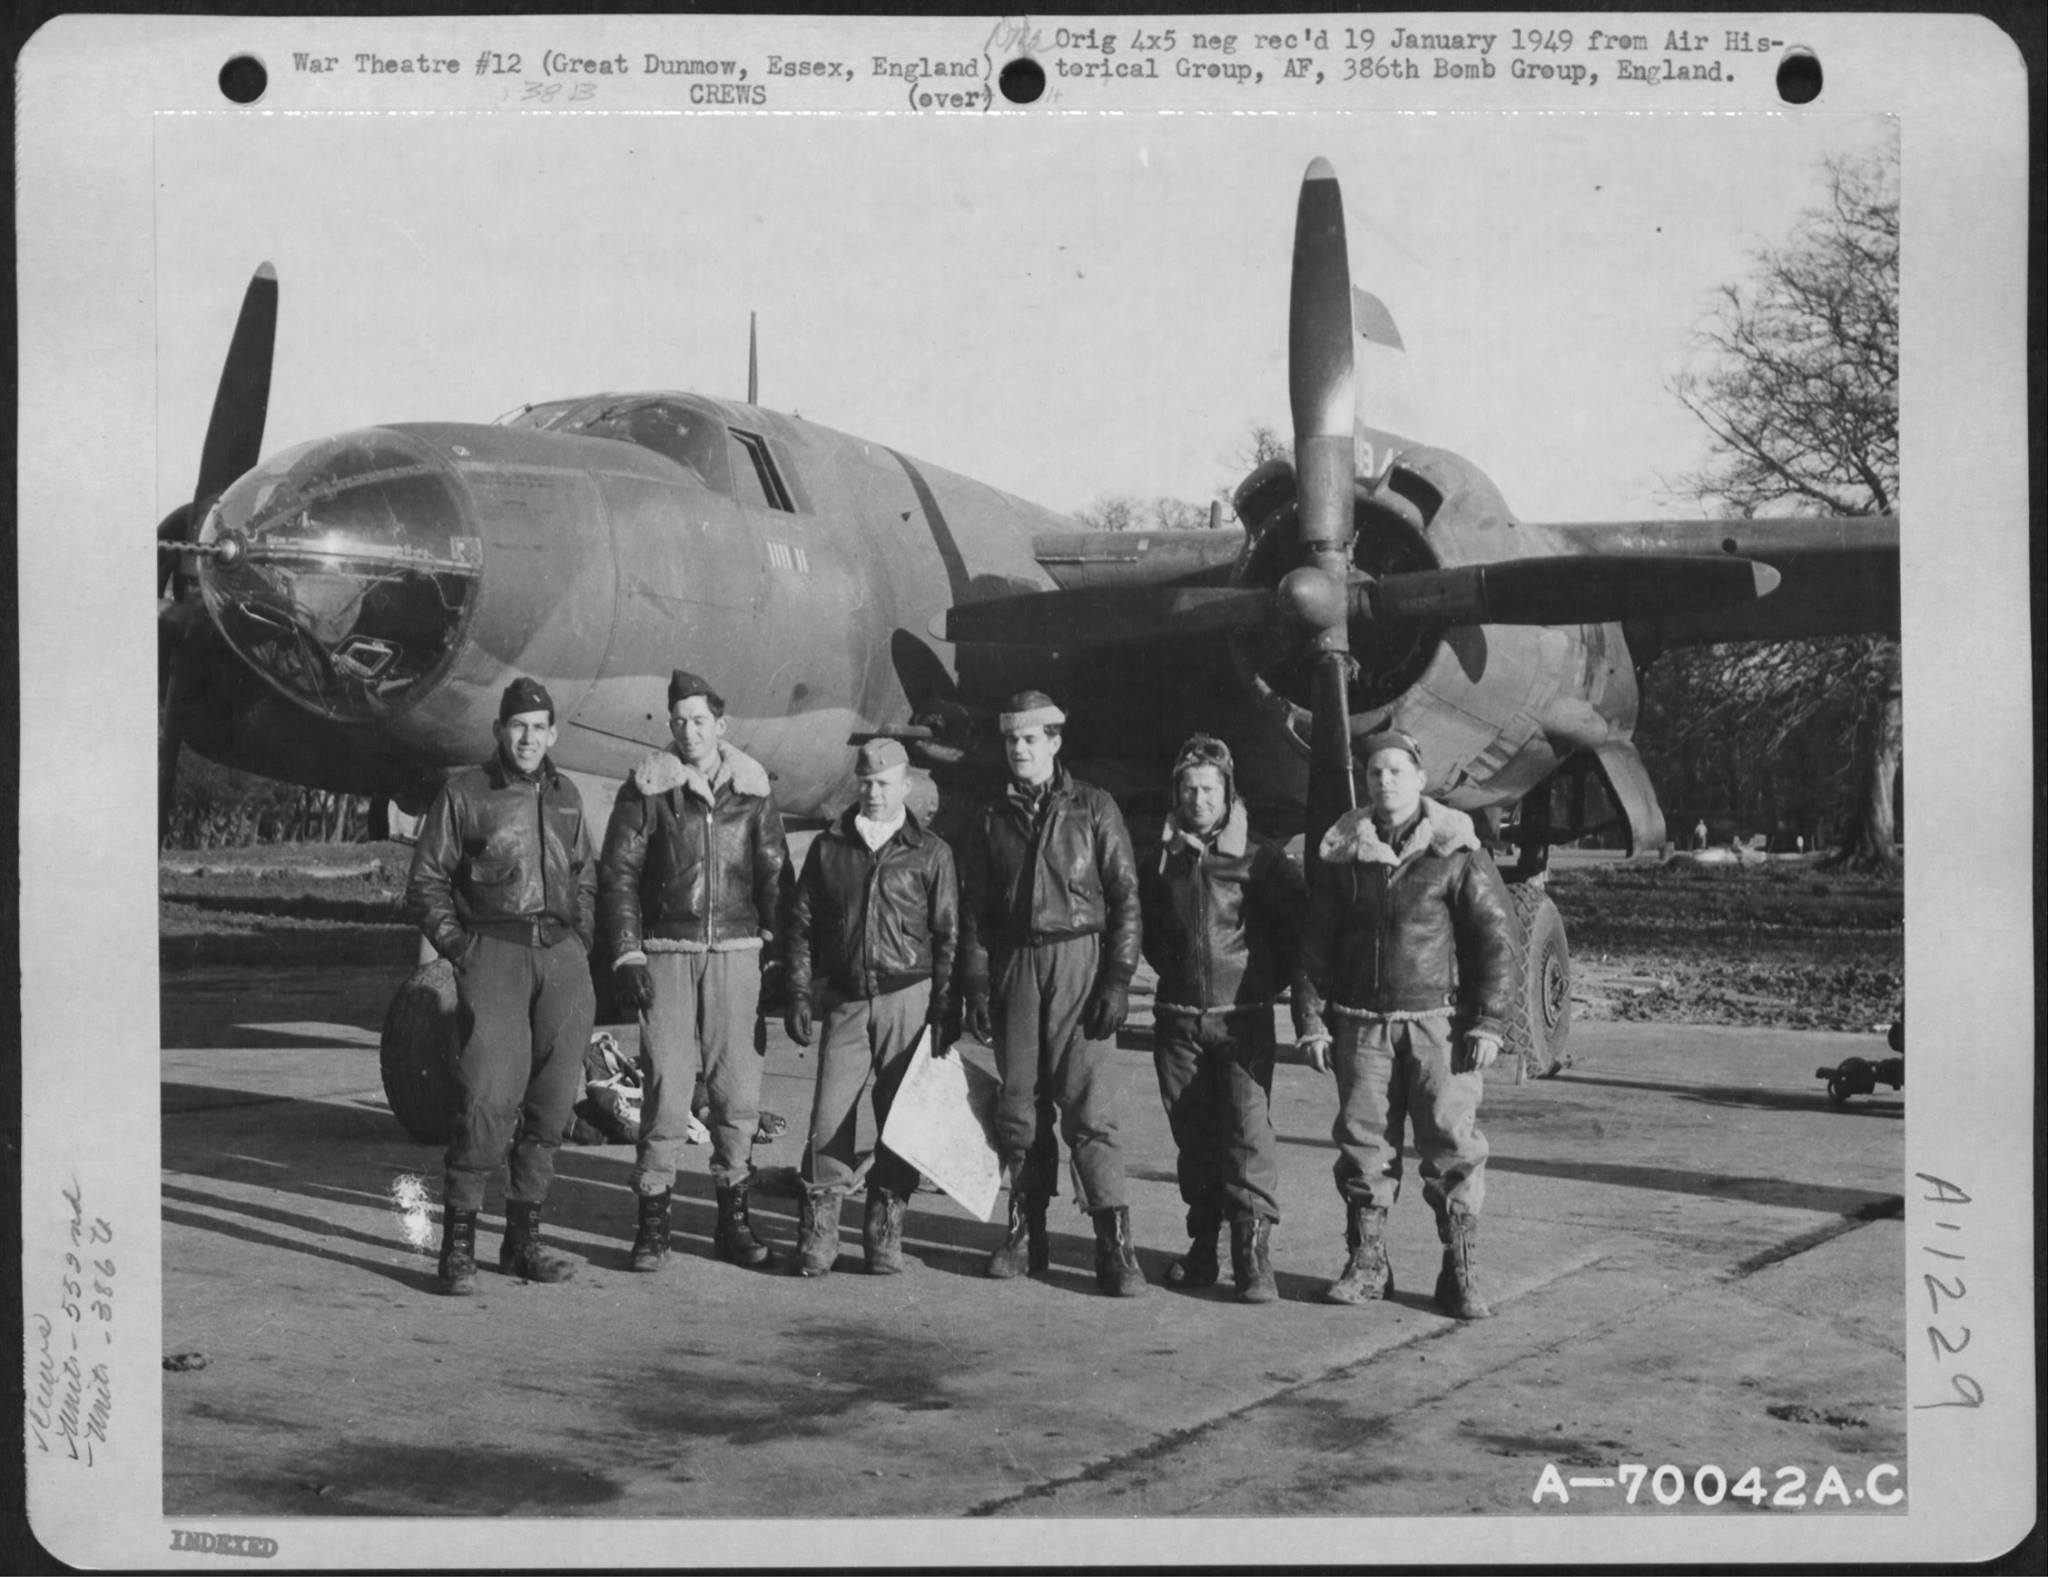 USAAF B 26 Marauder 386BG552BS with crew at their base in Great Dunmow Essex England 14 Sep 1943 01